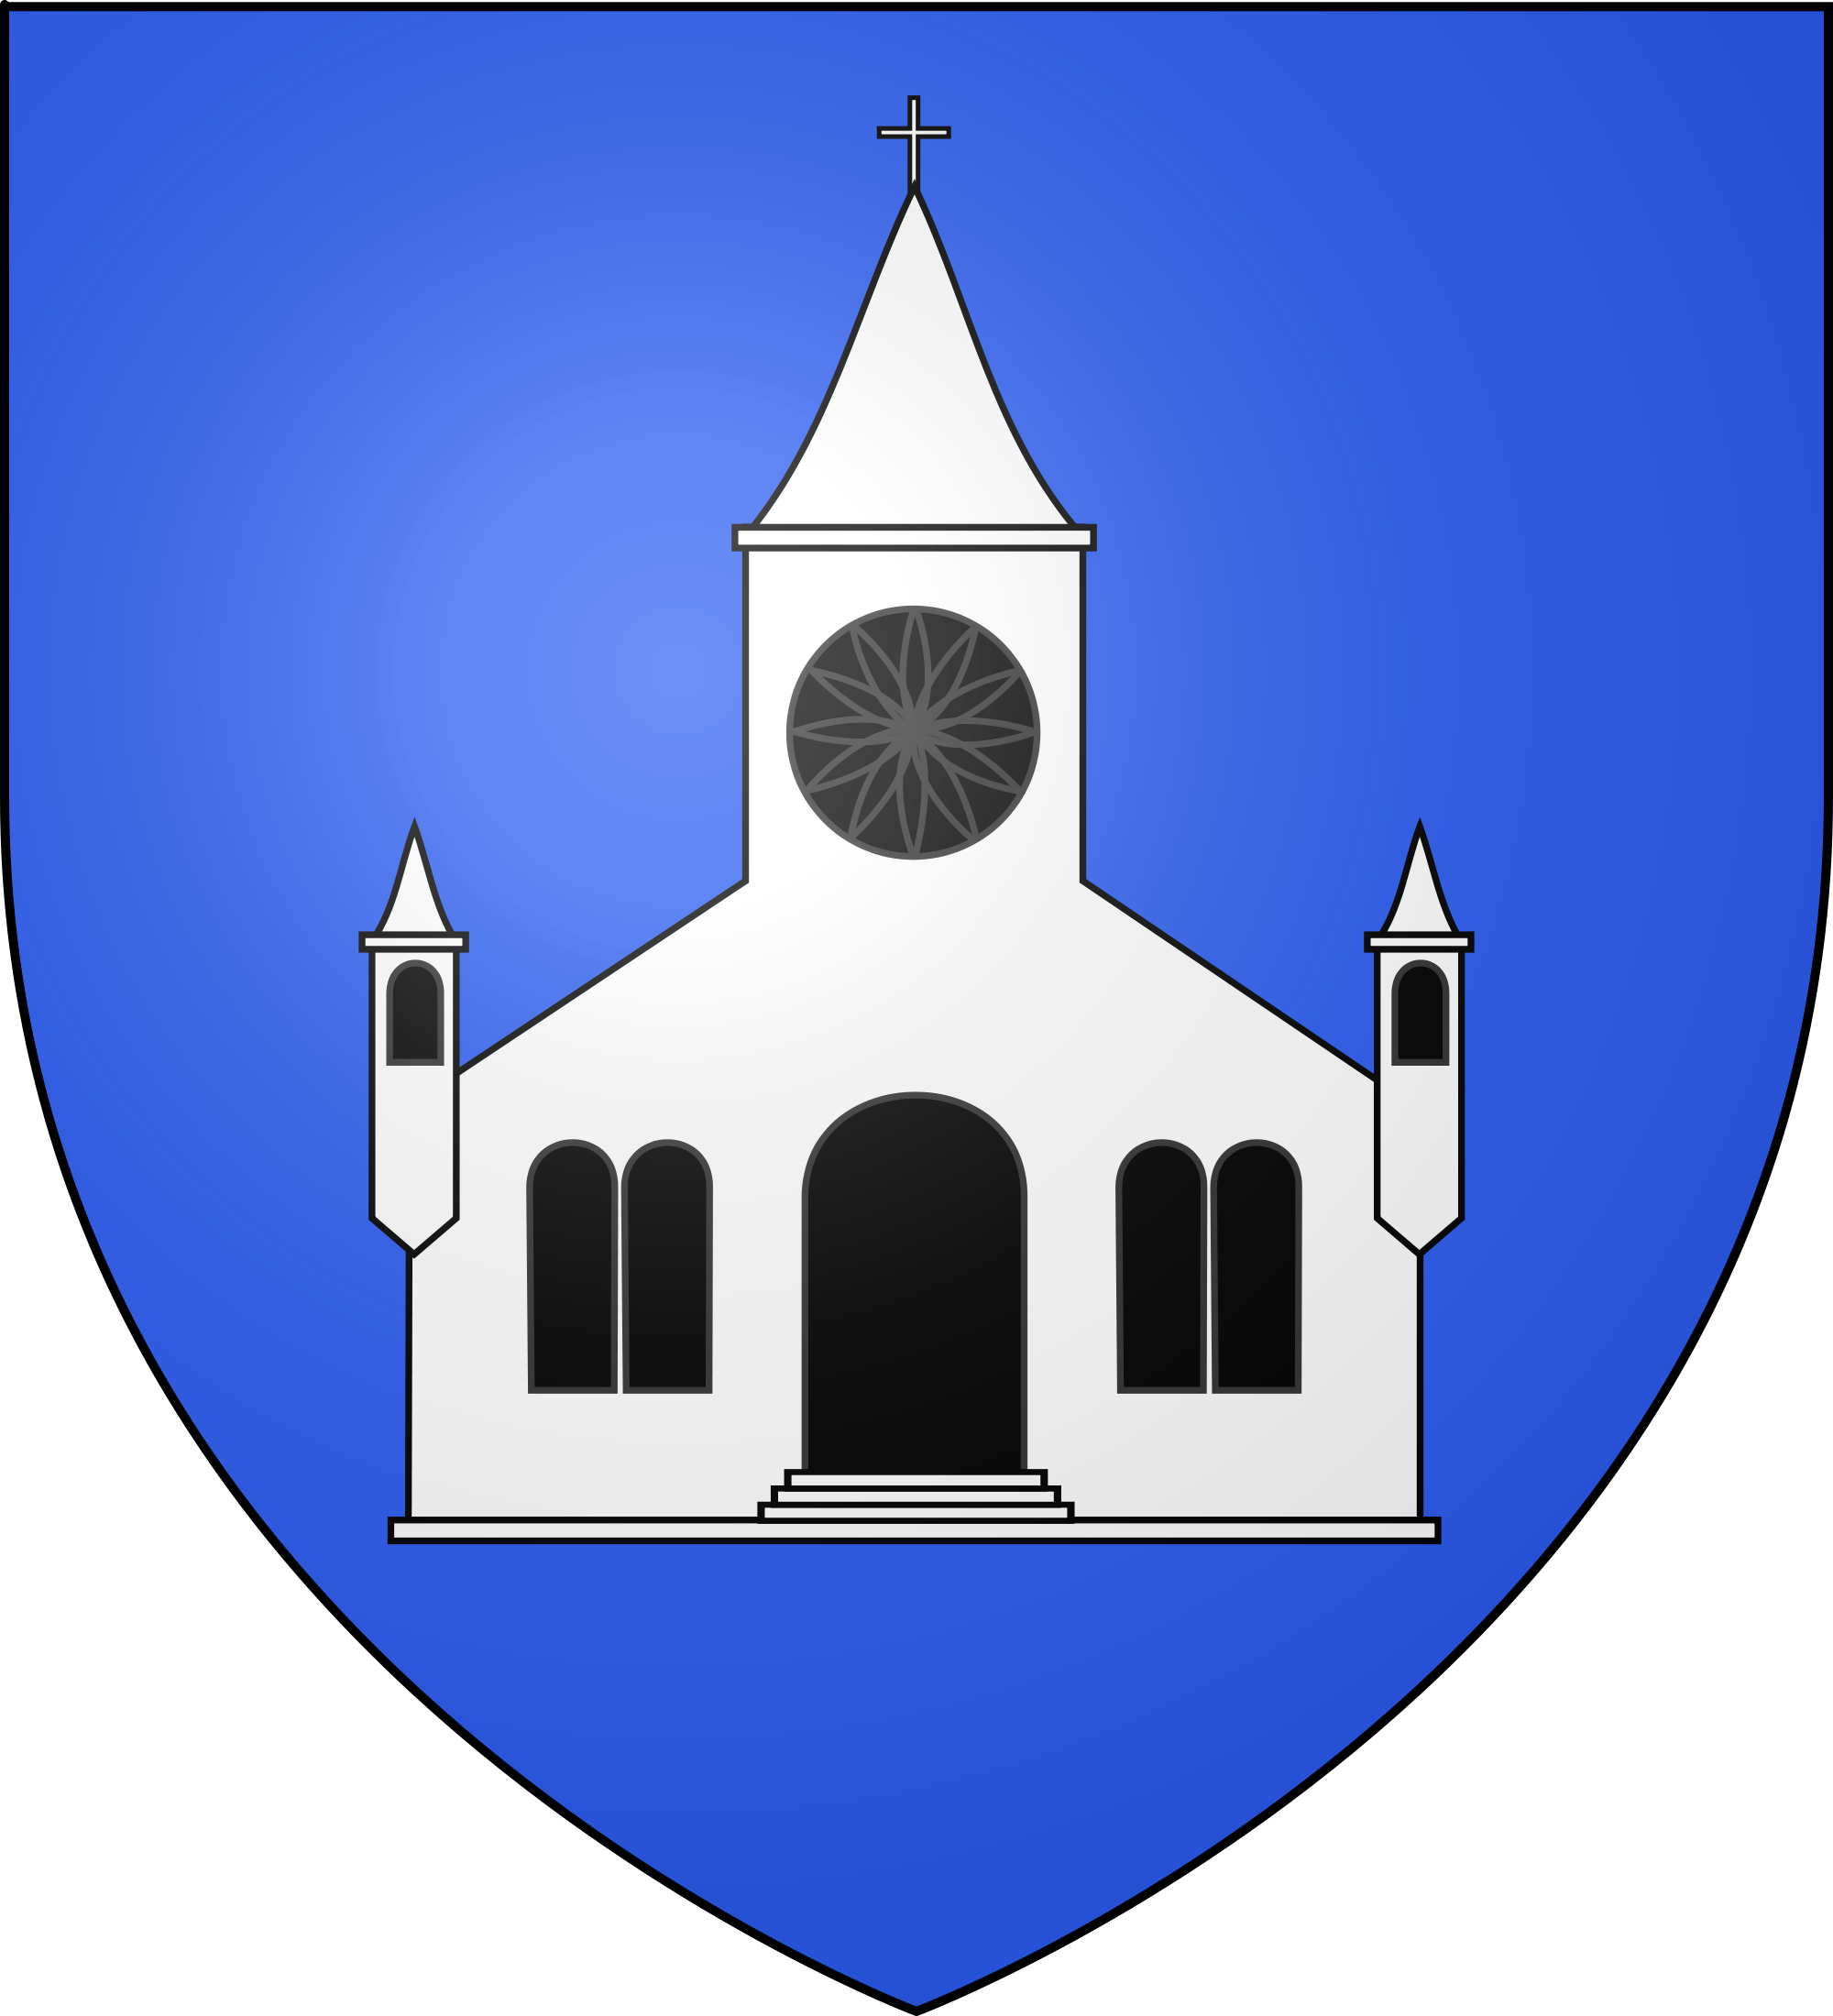 File:Blason ville fr Morteau (Doubs).svg.